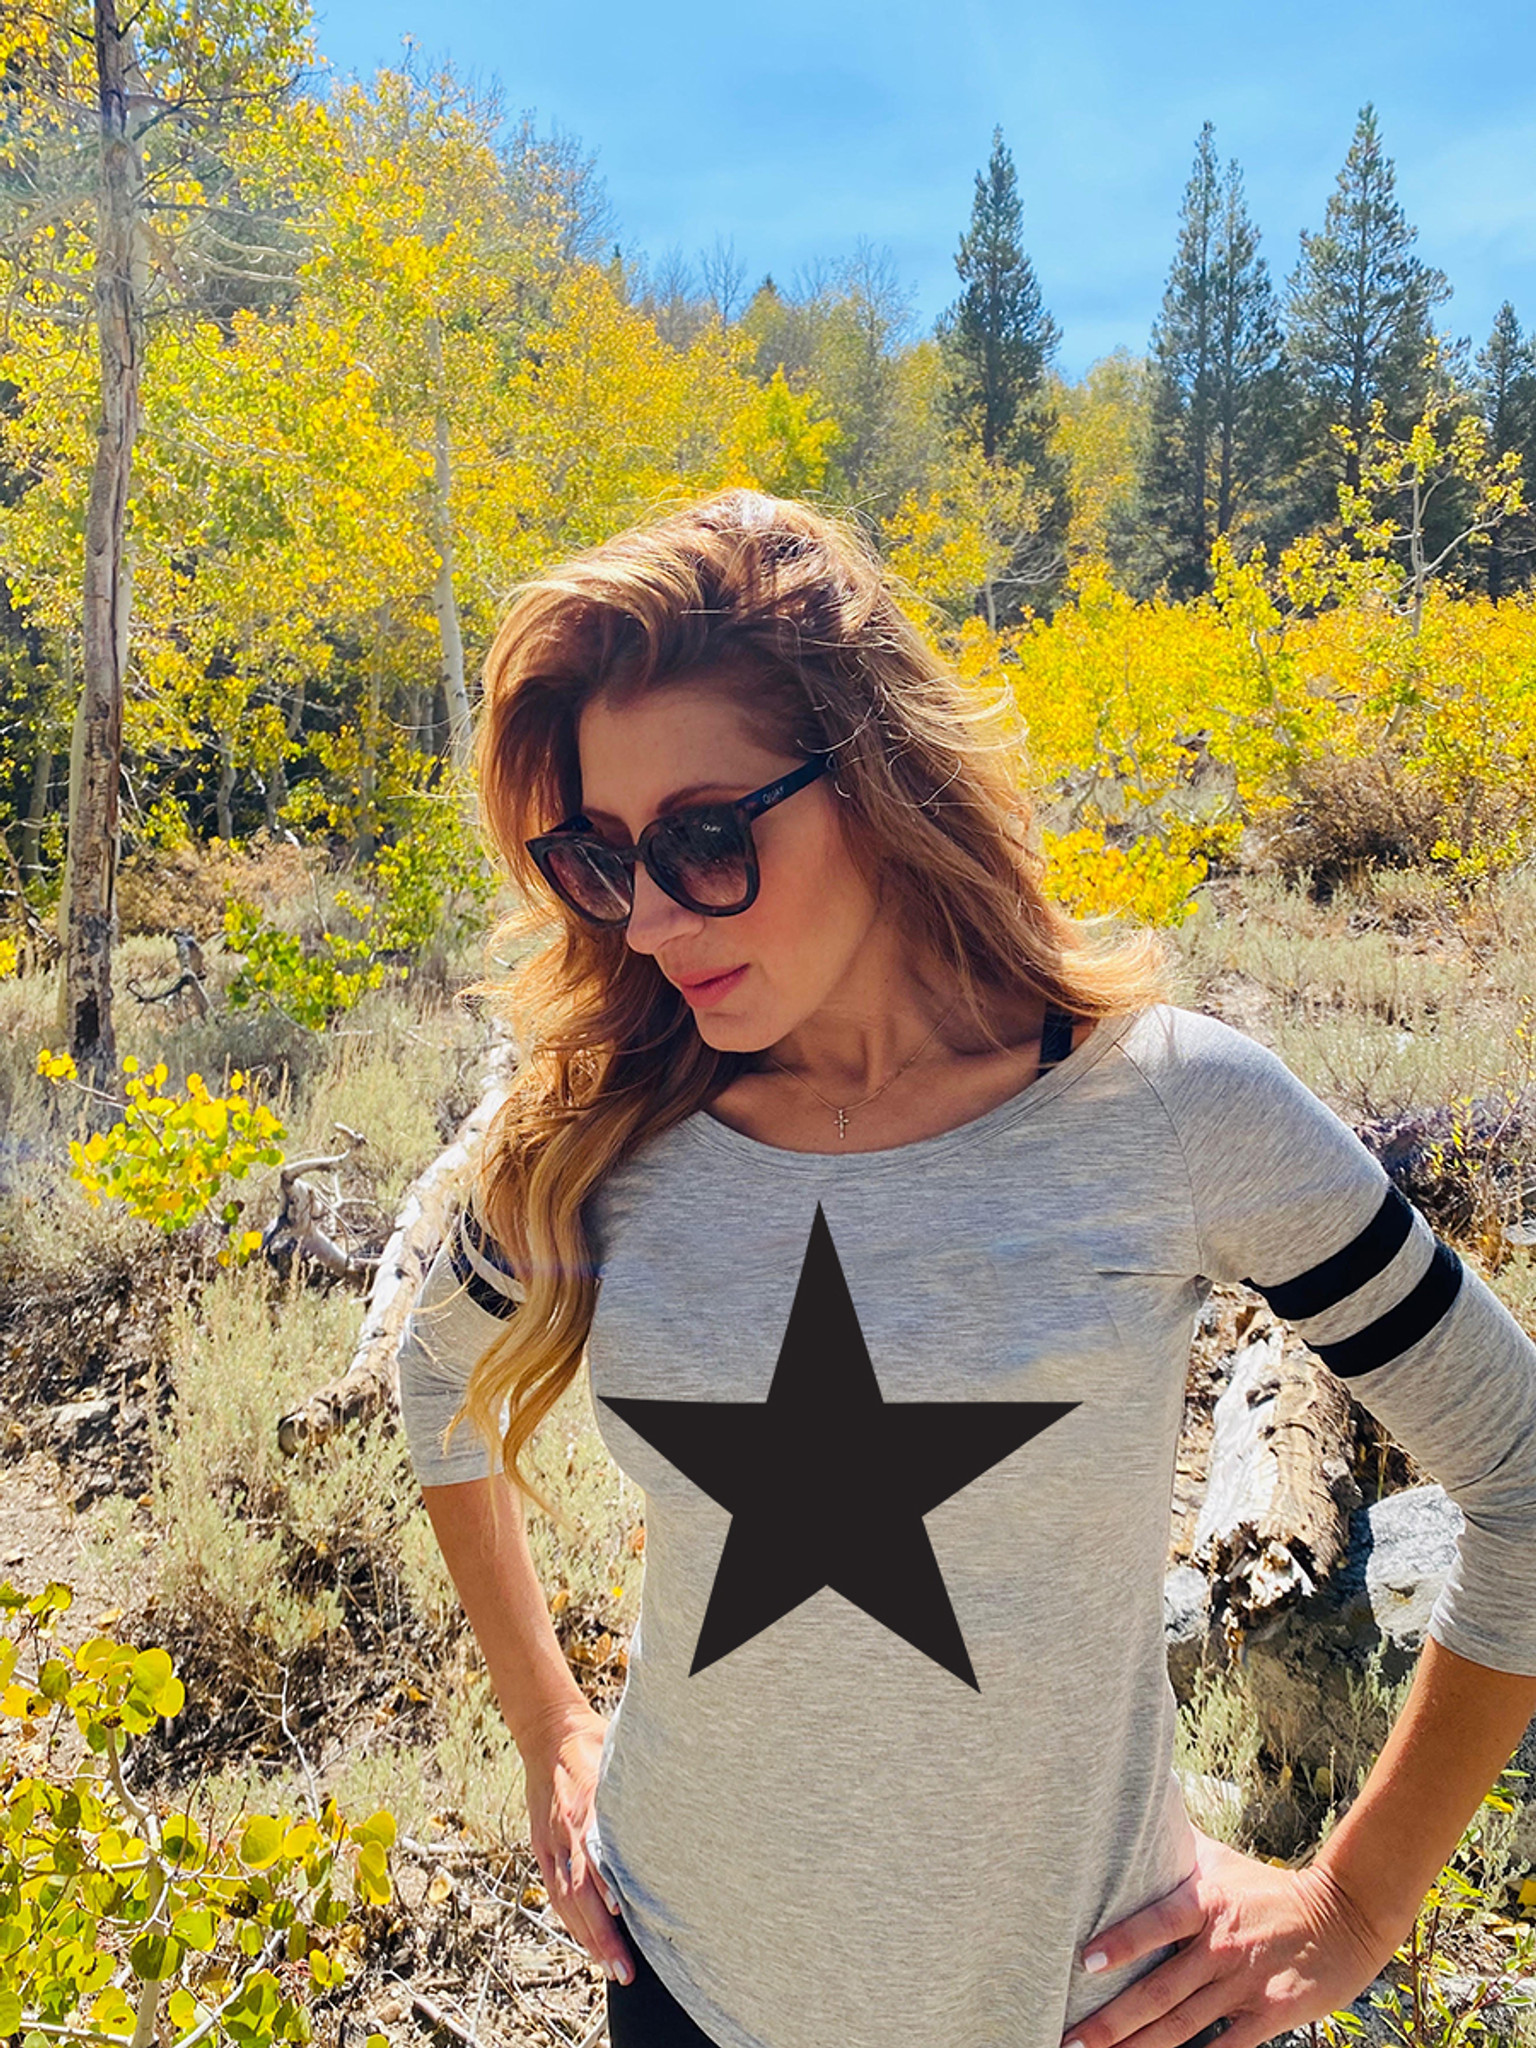 STAR BASEBALL TEE WITH 3 SMALL STARS ON BACK BELOW NECKLINE (Grey)